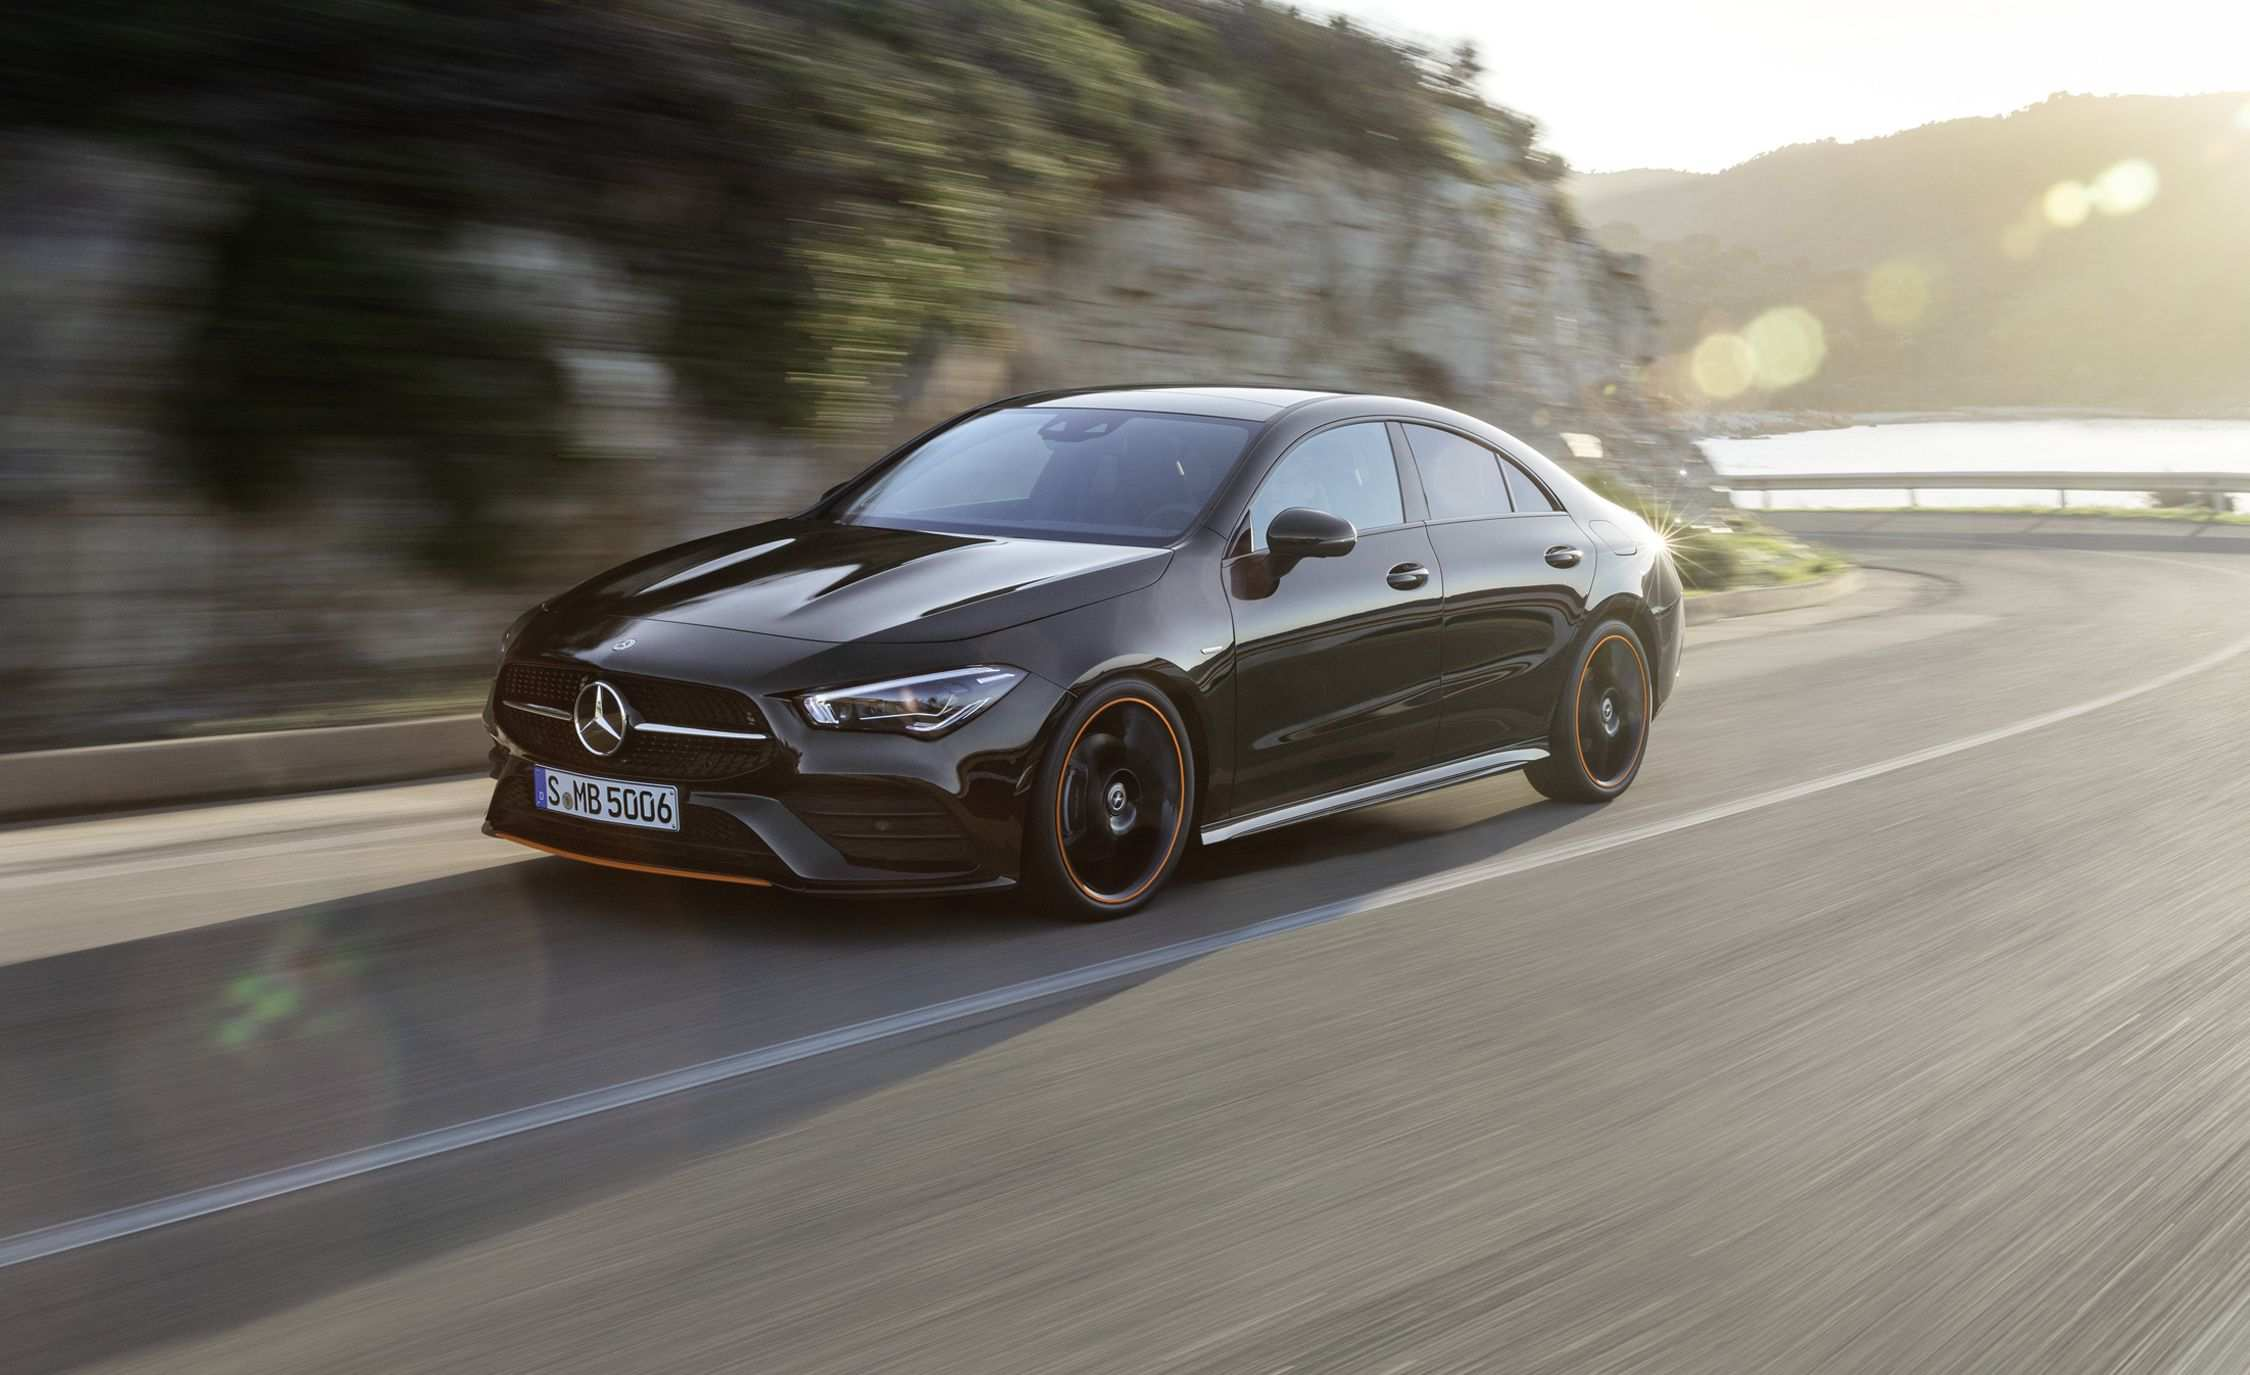 92 Gallery of New Cla Mercedes 2020 Spy Shoot for New Cla Mercedes 2020